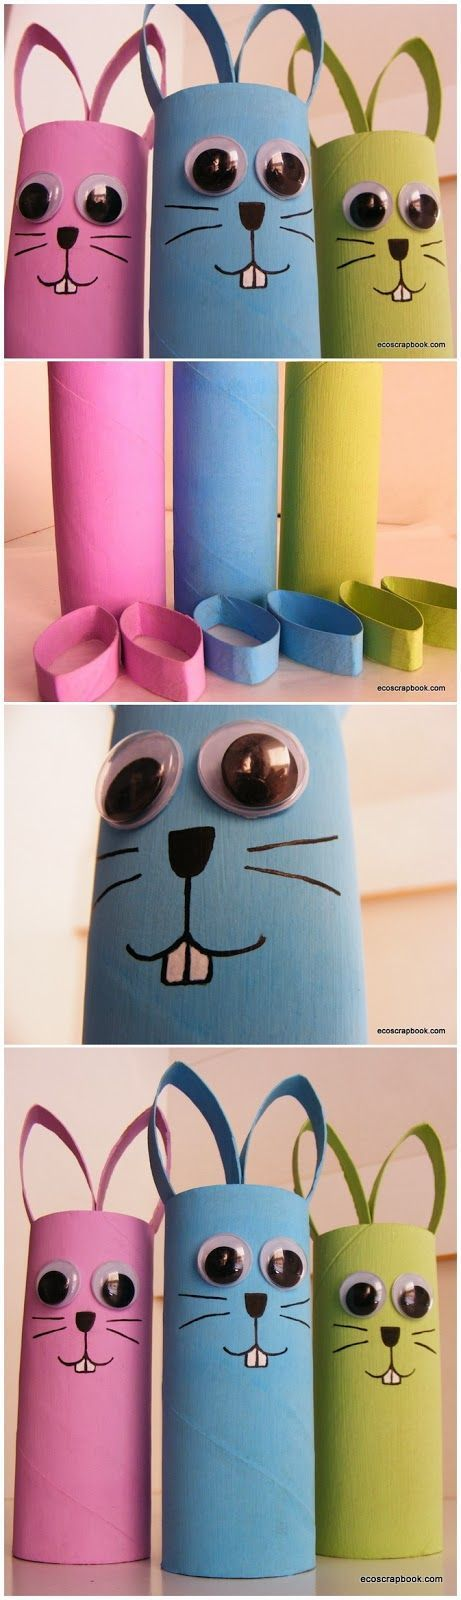 Diy Projects: 7 Toilet Paper Roll Crafts for Kids: